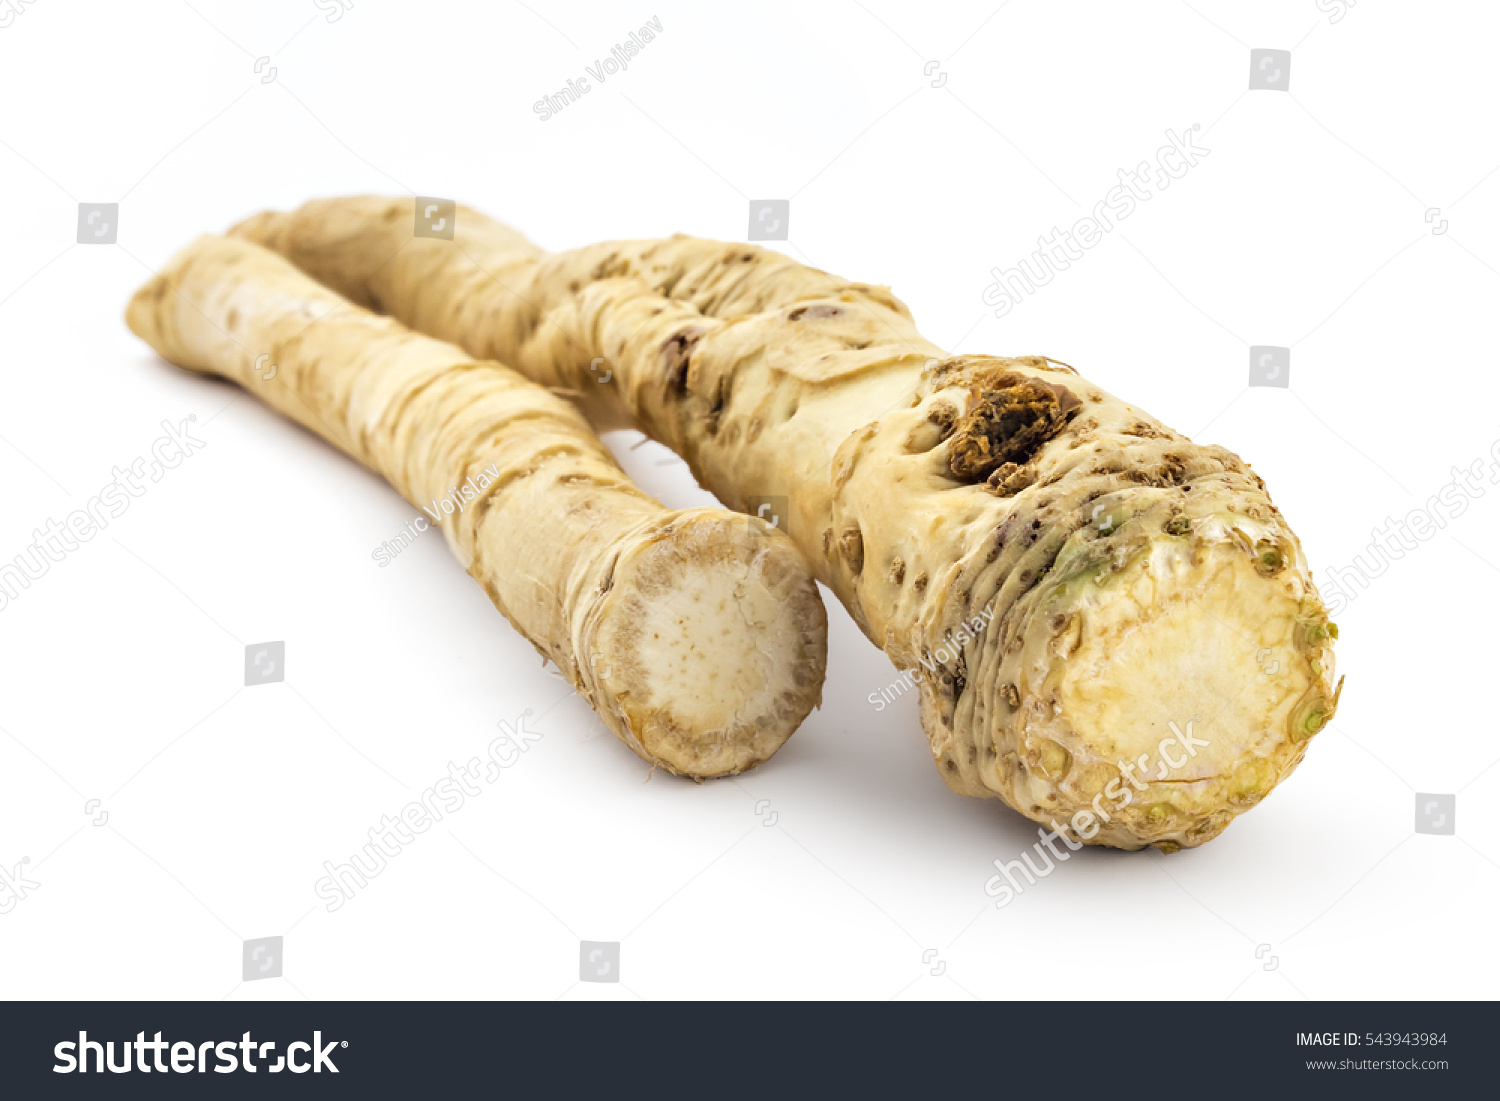 how to prepare fresh horseradish root